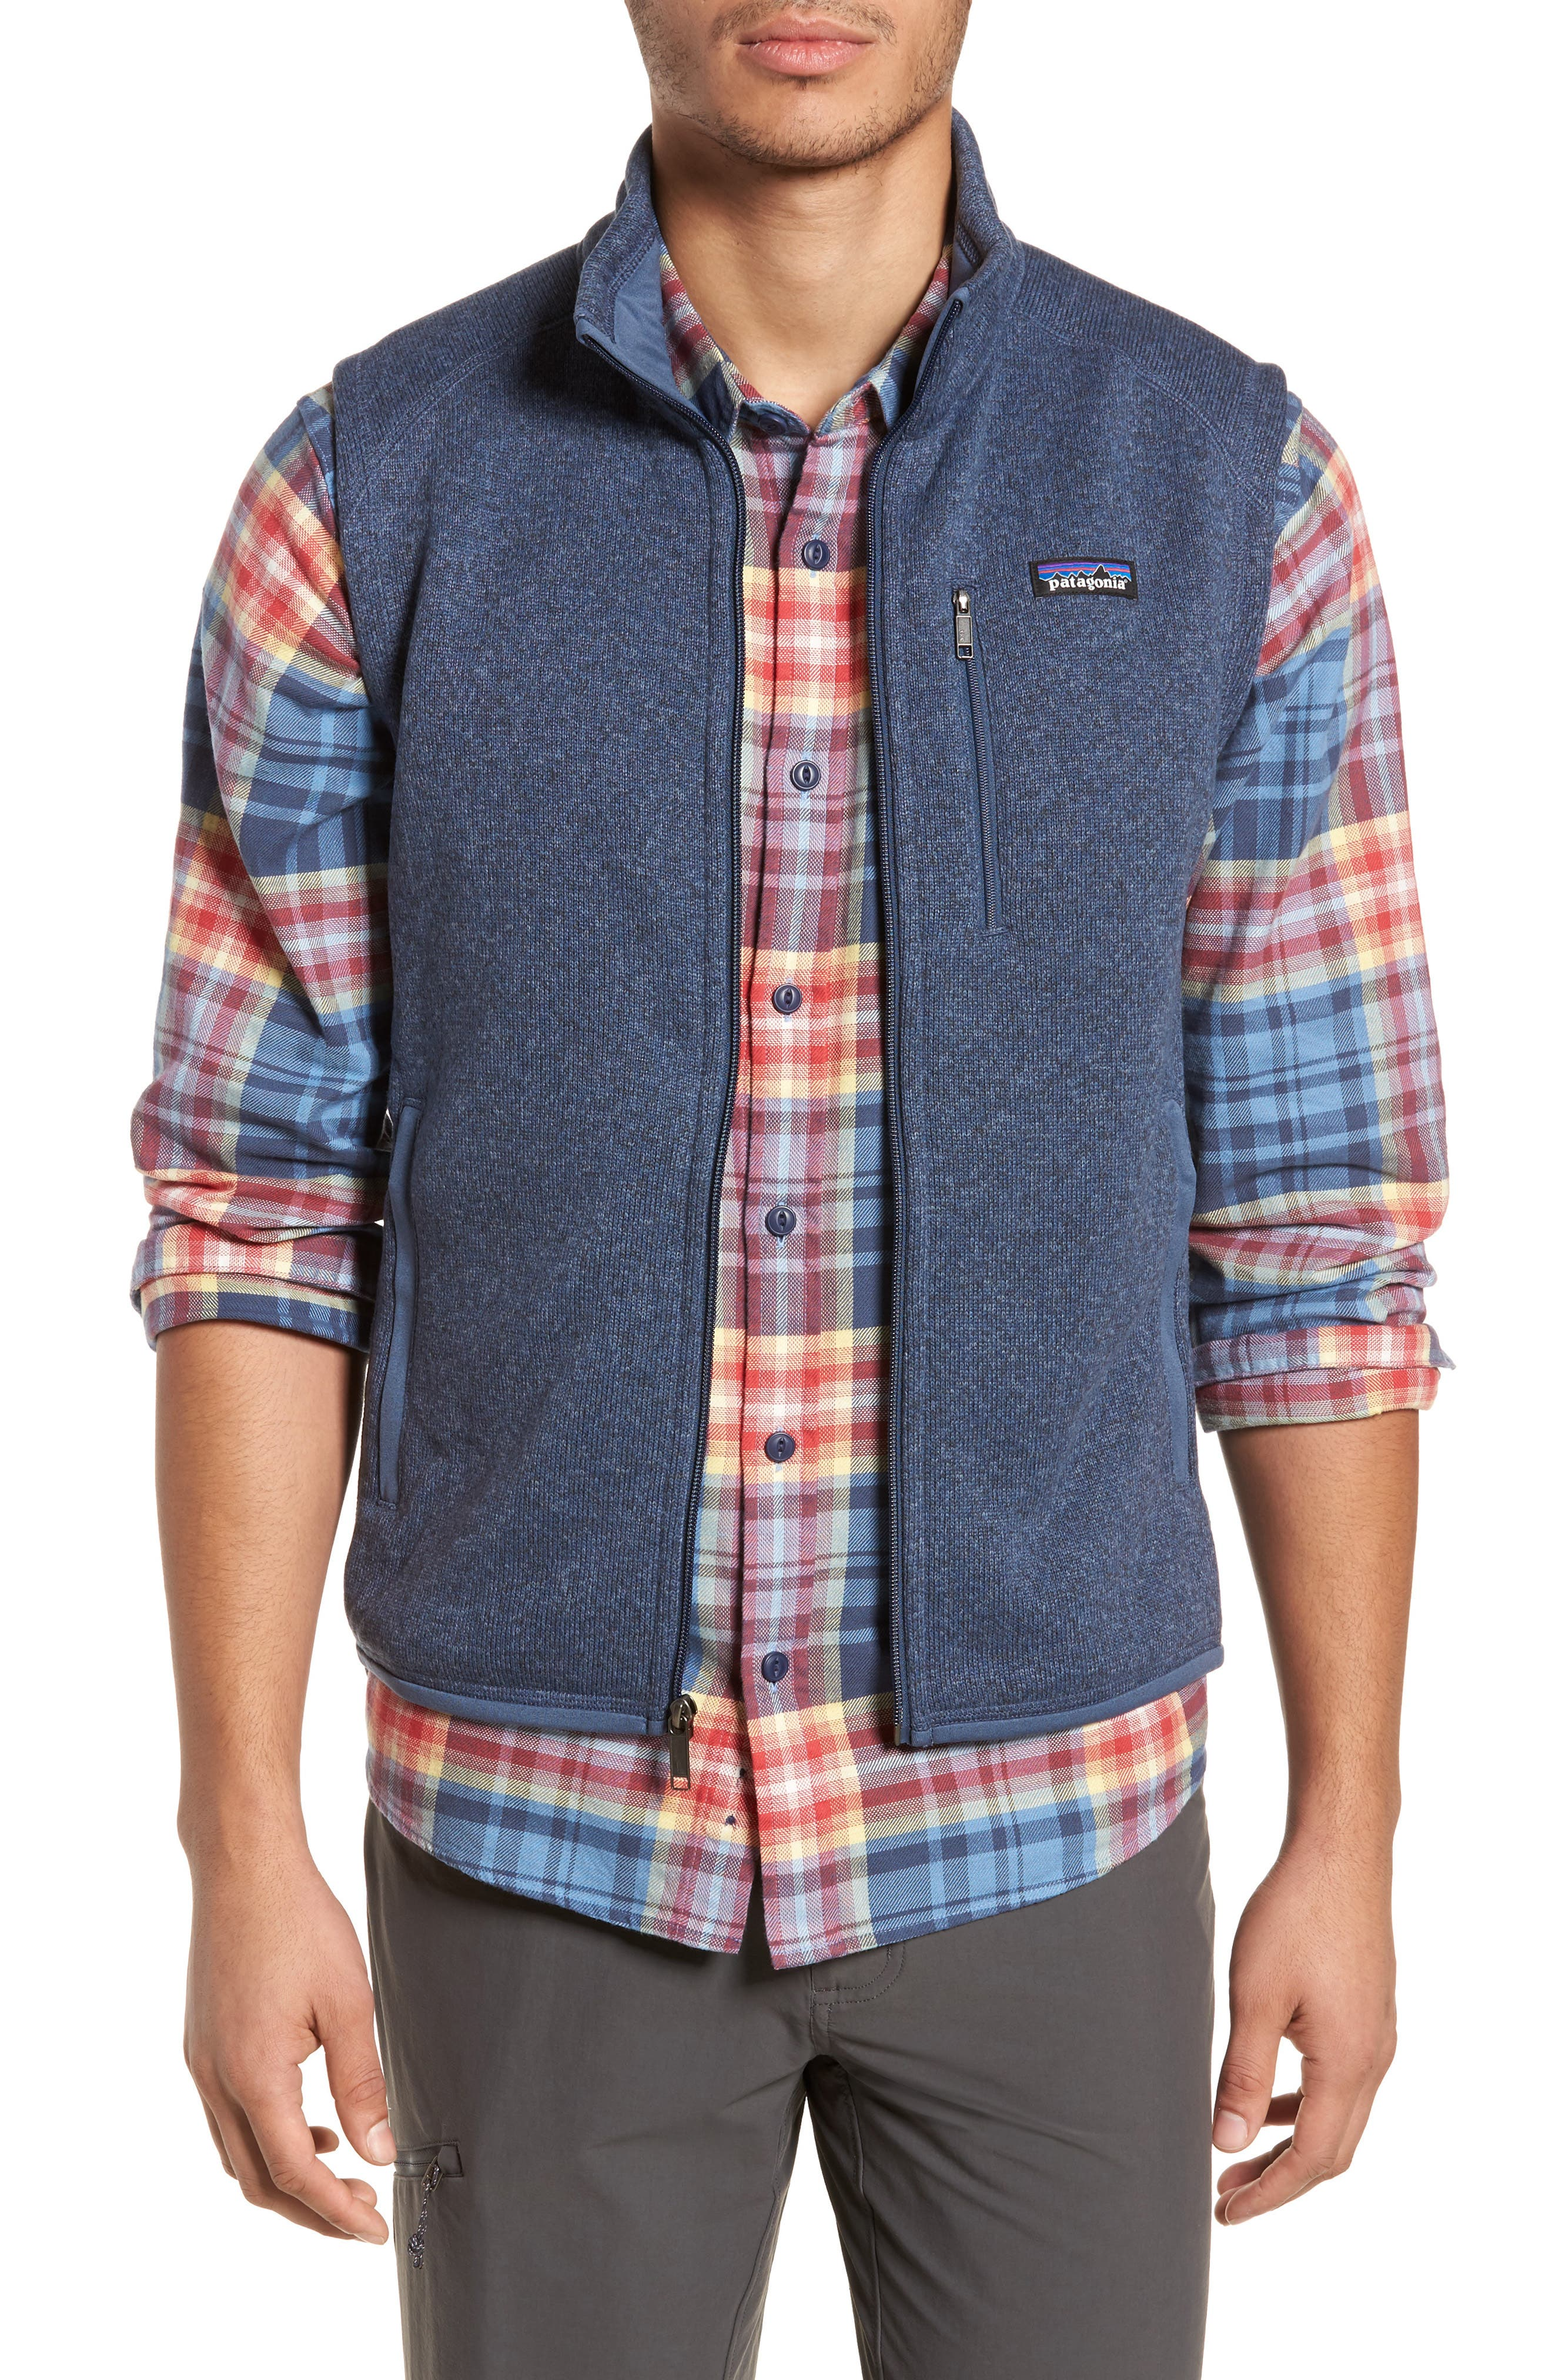 PATAGONIA 'Better Sweater' Zip Front Vest, Main, color, DOLOMITE BLUE